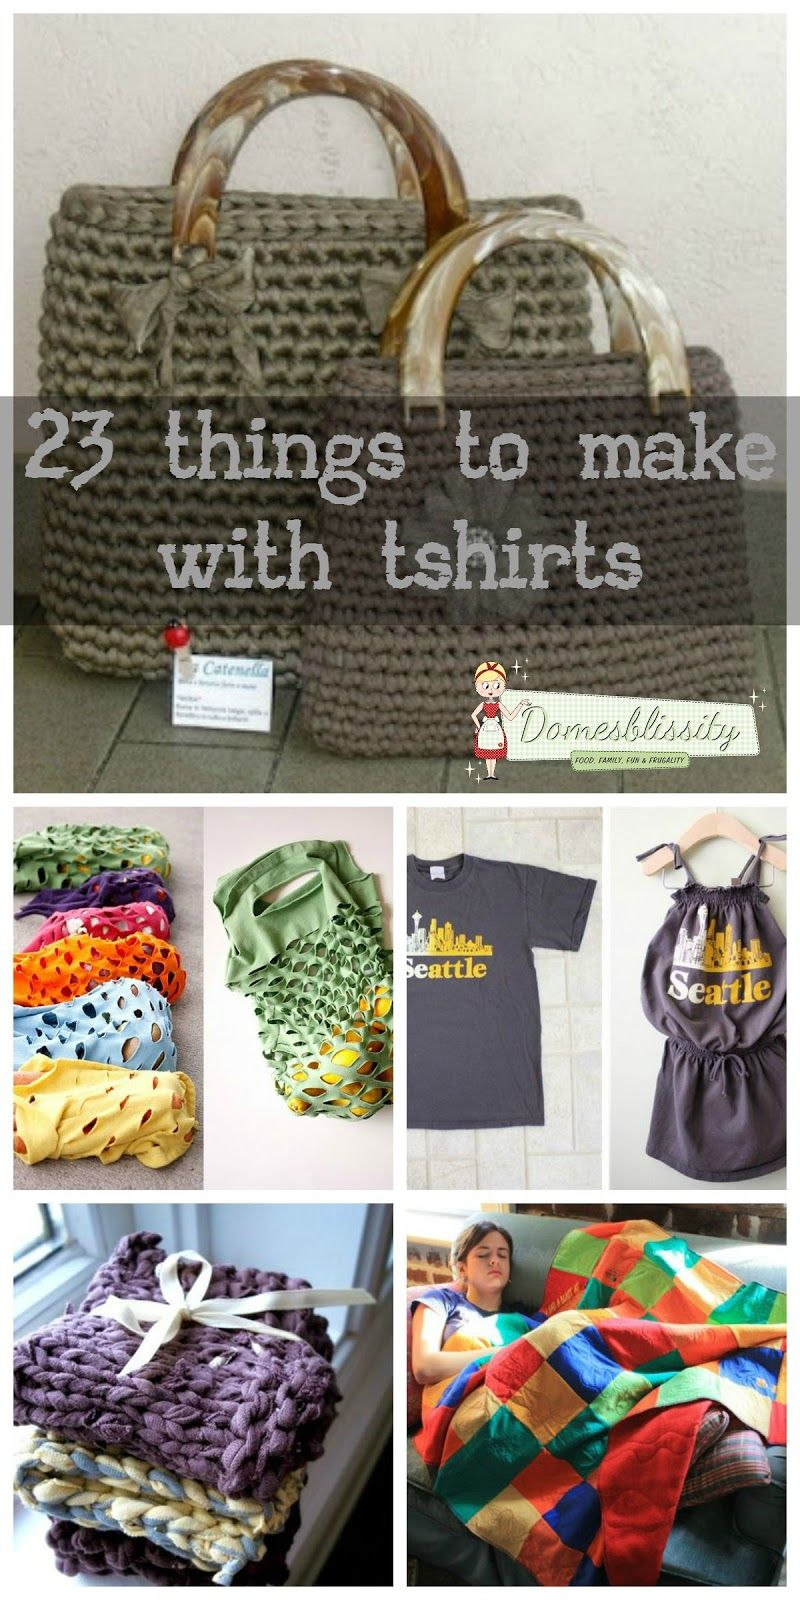 How to make useful things from old clothes